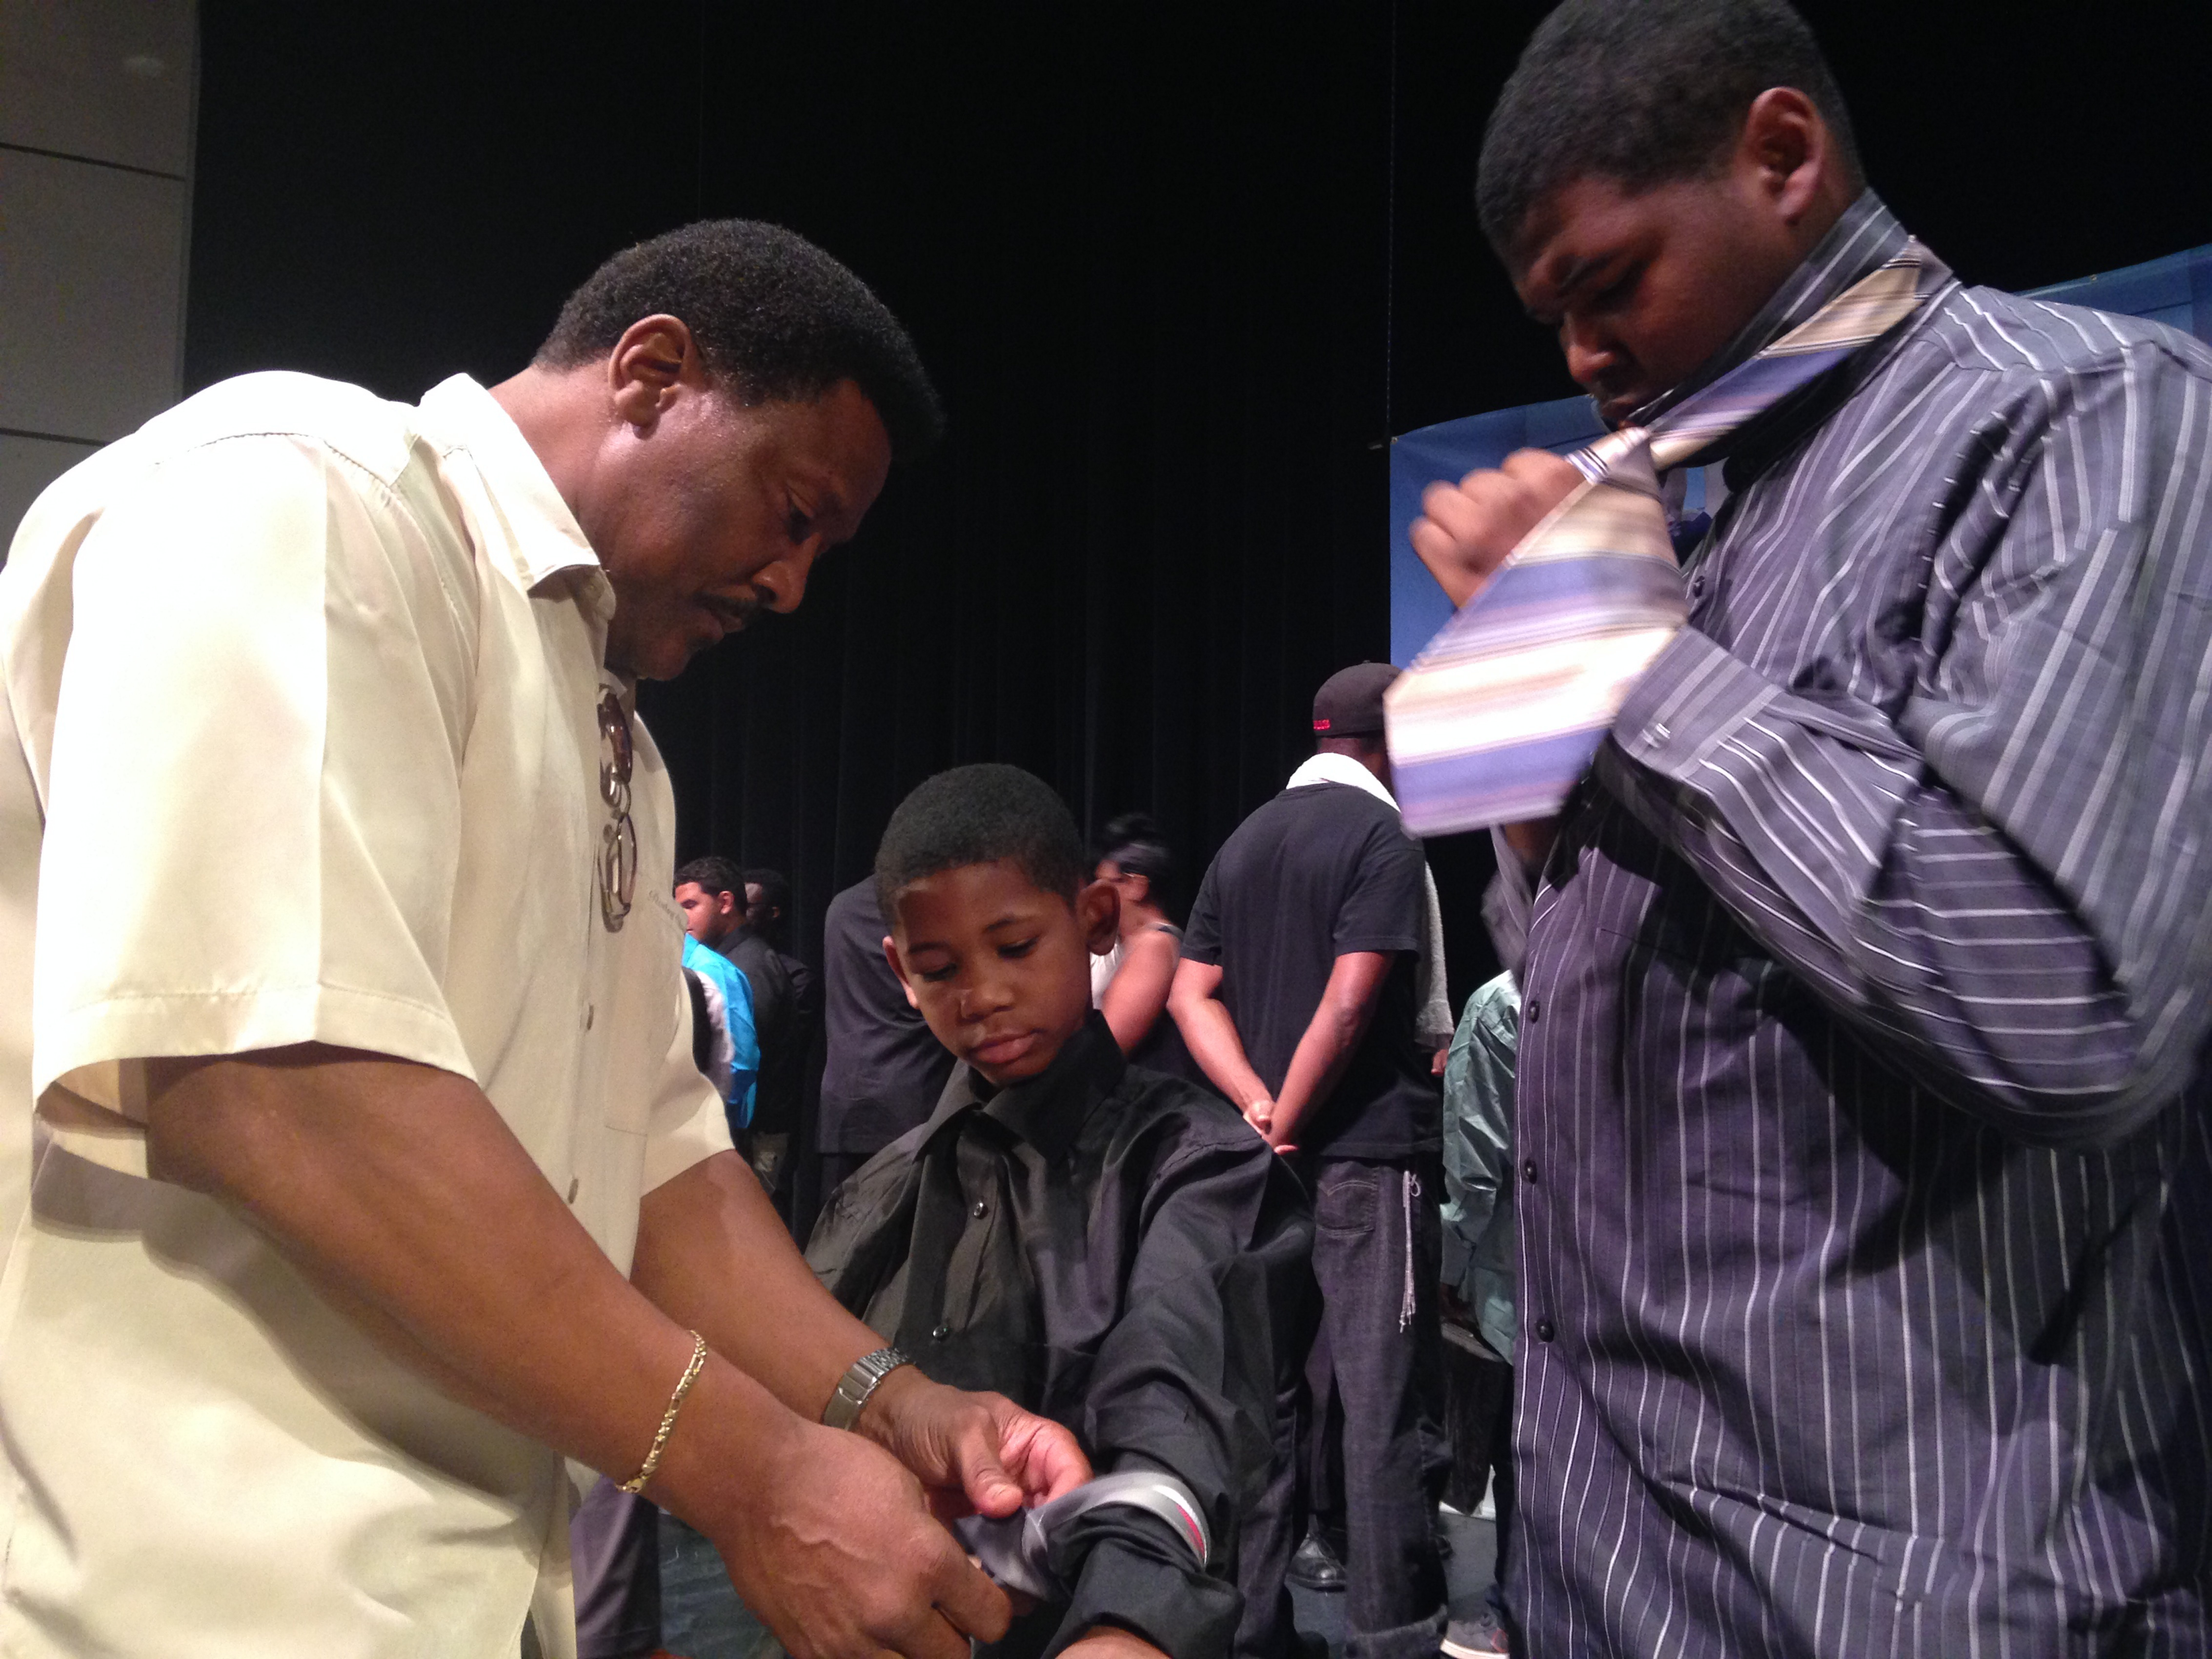 Mentor Douglas Chavers shows brothers Darryl, 8, and Kahlil Emerson, 13, how to tie their ties Saturday at the Boys to Men conference.